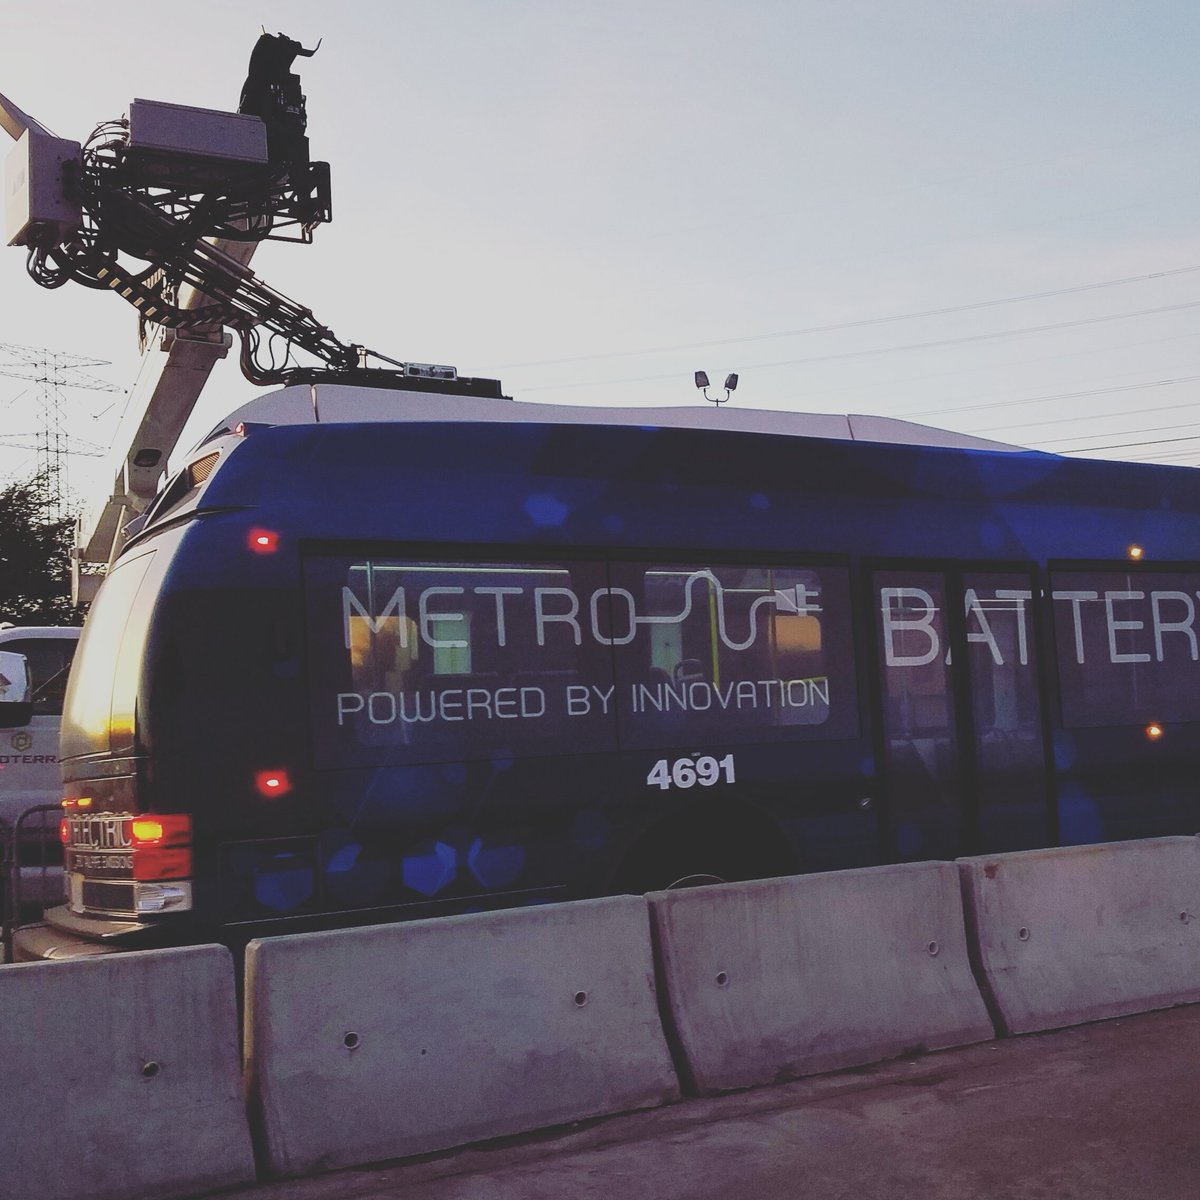 Metro Houston على تويتر Yes We Rolled Out Our New Electric Bus Last Month As Part Of A 90 Day Pilot Program Check It Https T Co Eifisdbfat R